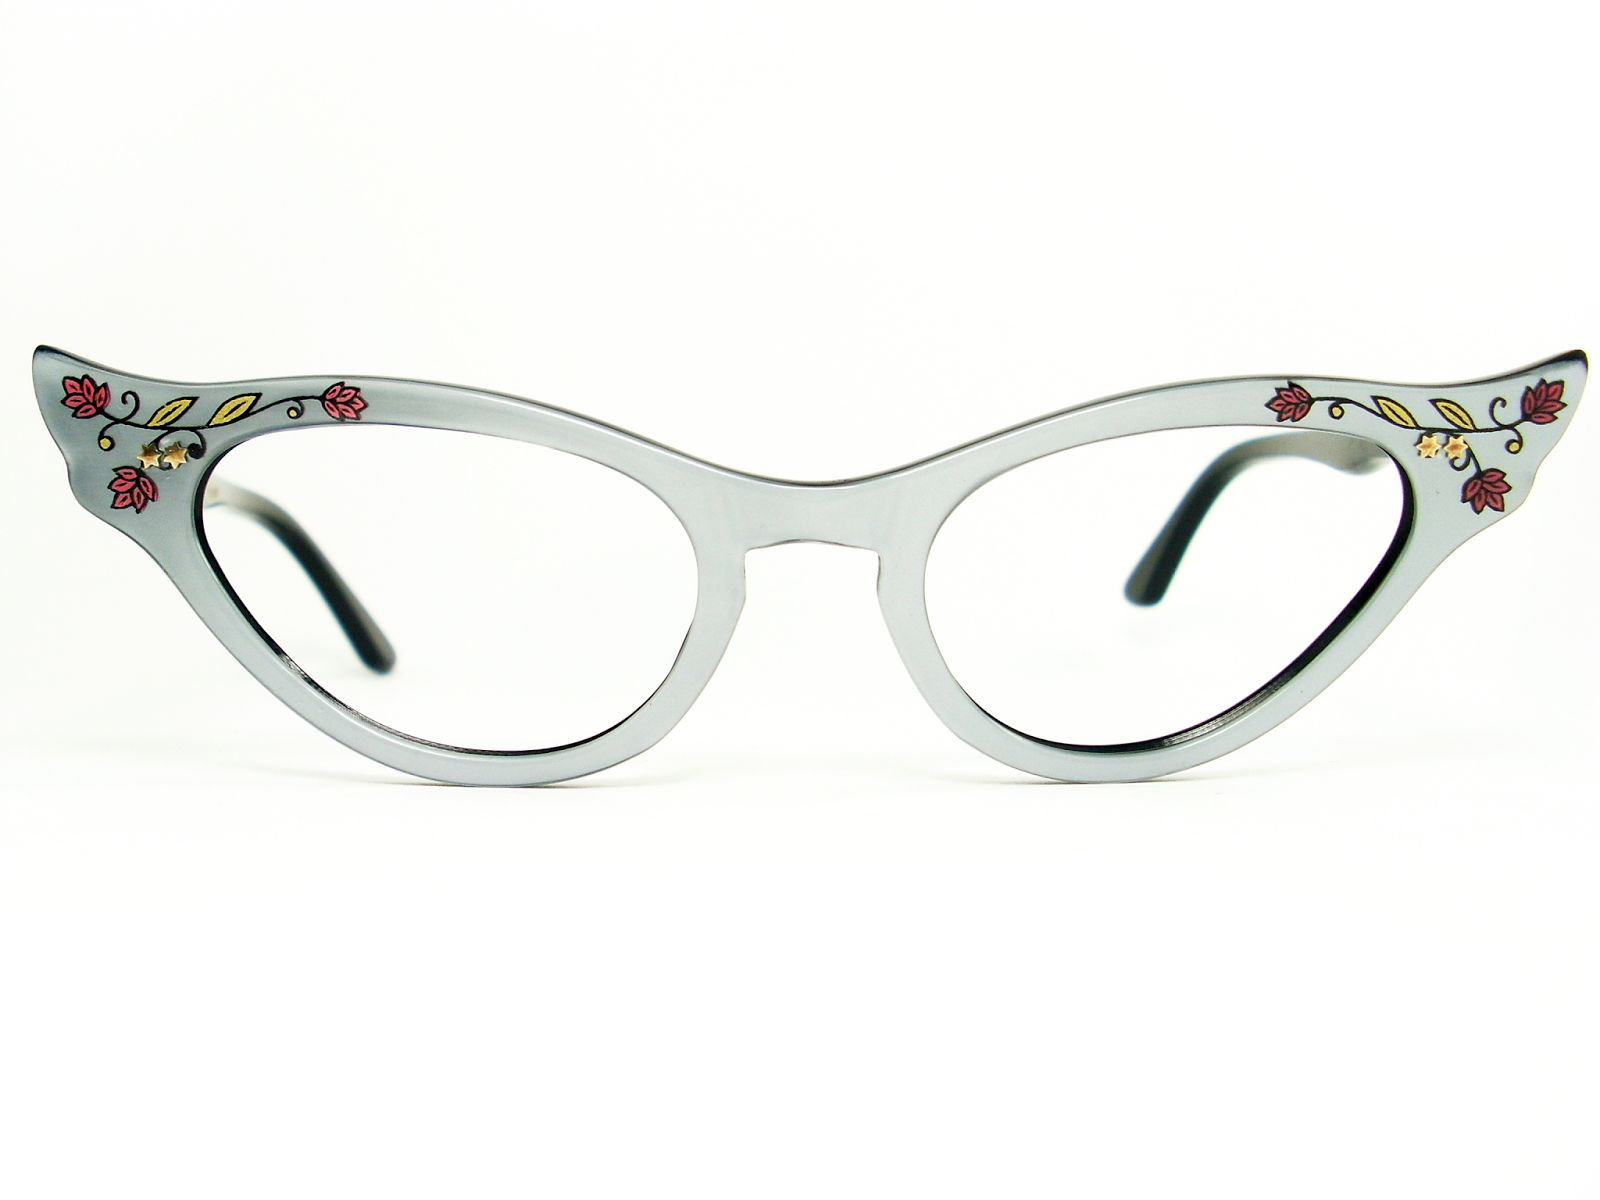 Cat Eye Frame Glasses Philippines : Vintage Eyeglasses Frames Eyewear Sunglasses 50S: VINTAGE ...